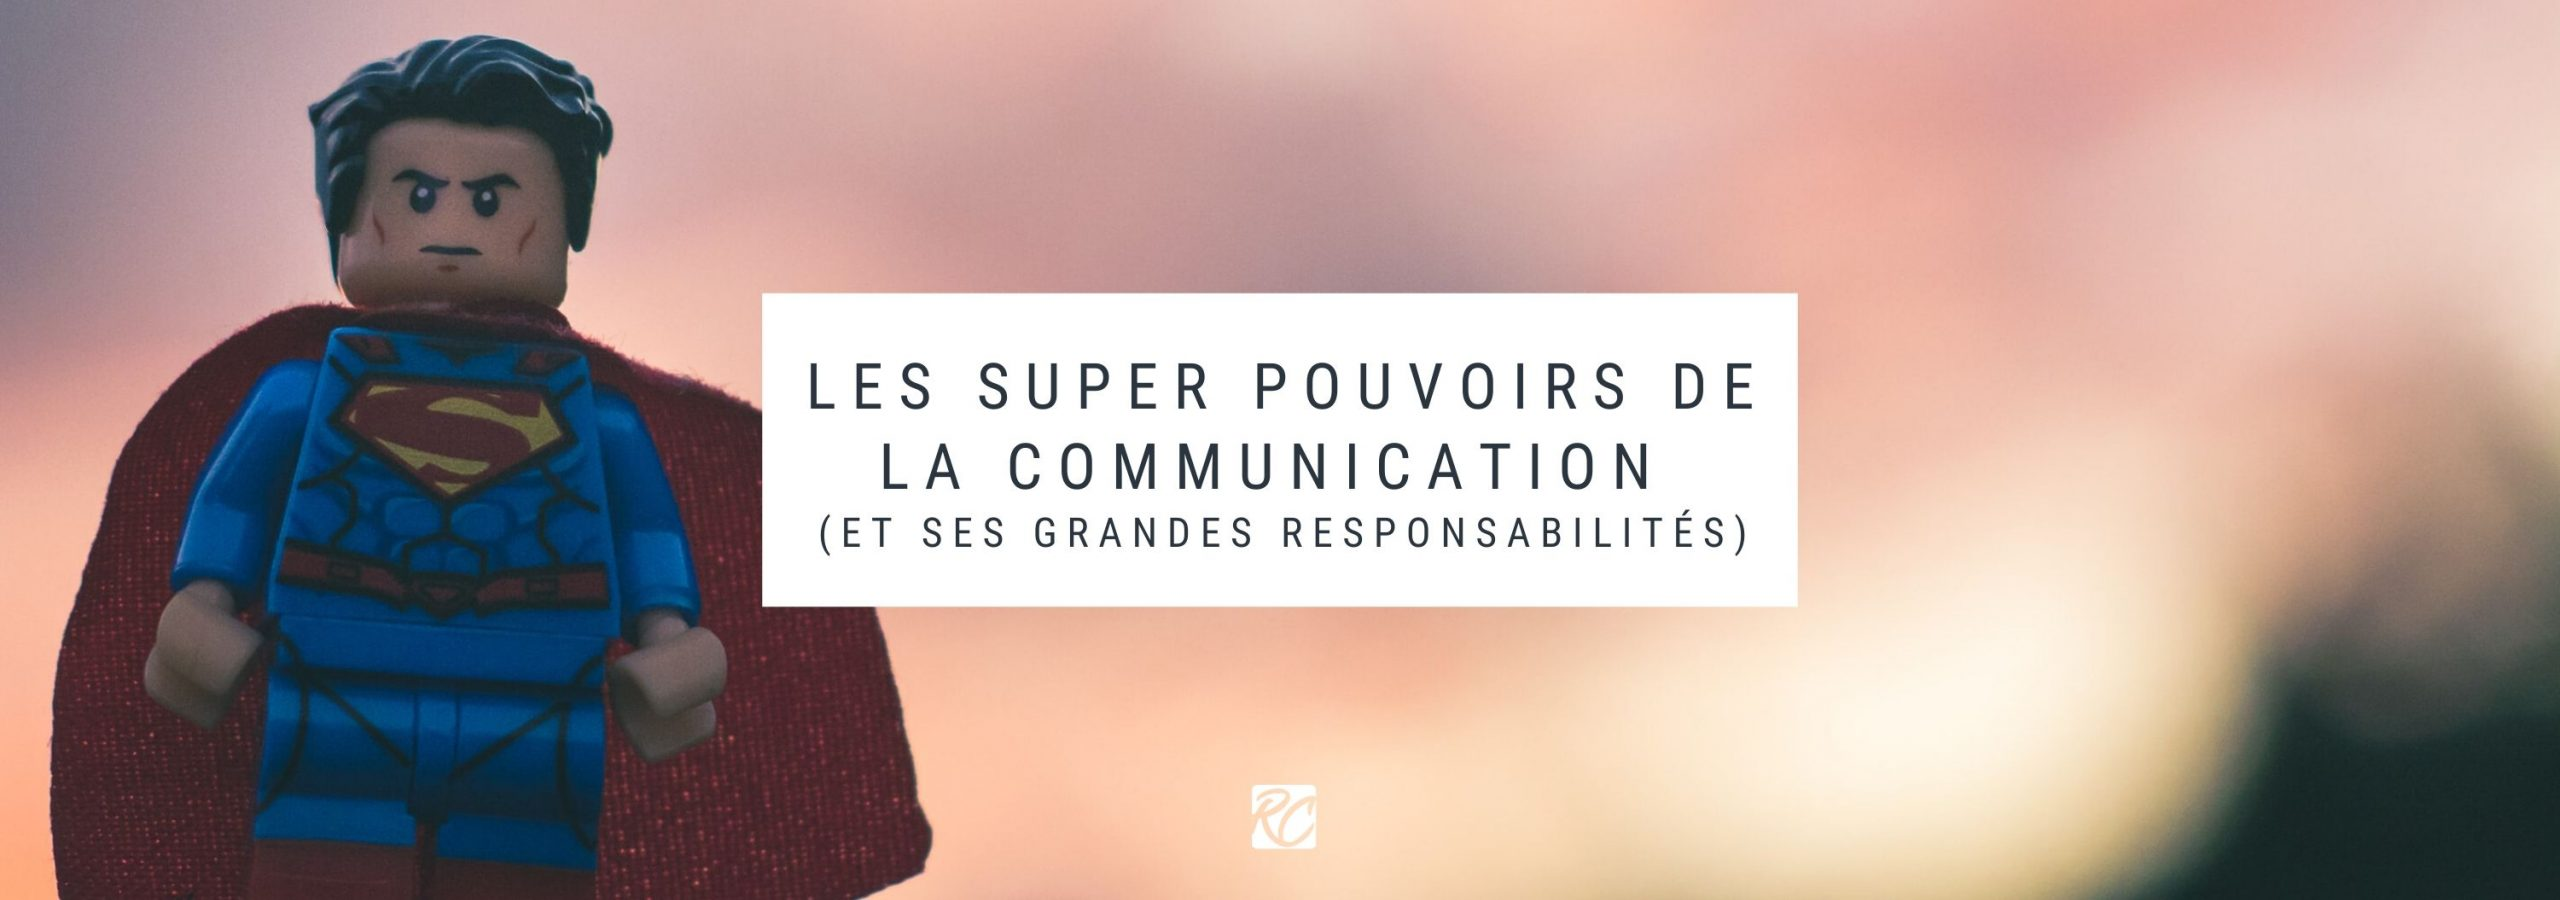 Les super pouvoirs de la communication - Un billet de blog by Roxane Chan Pao